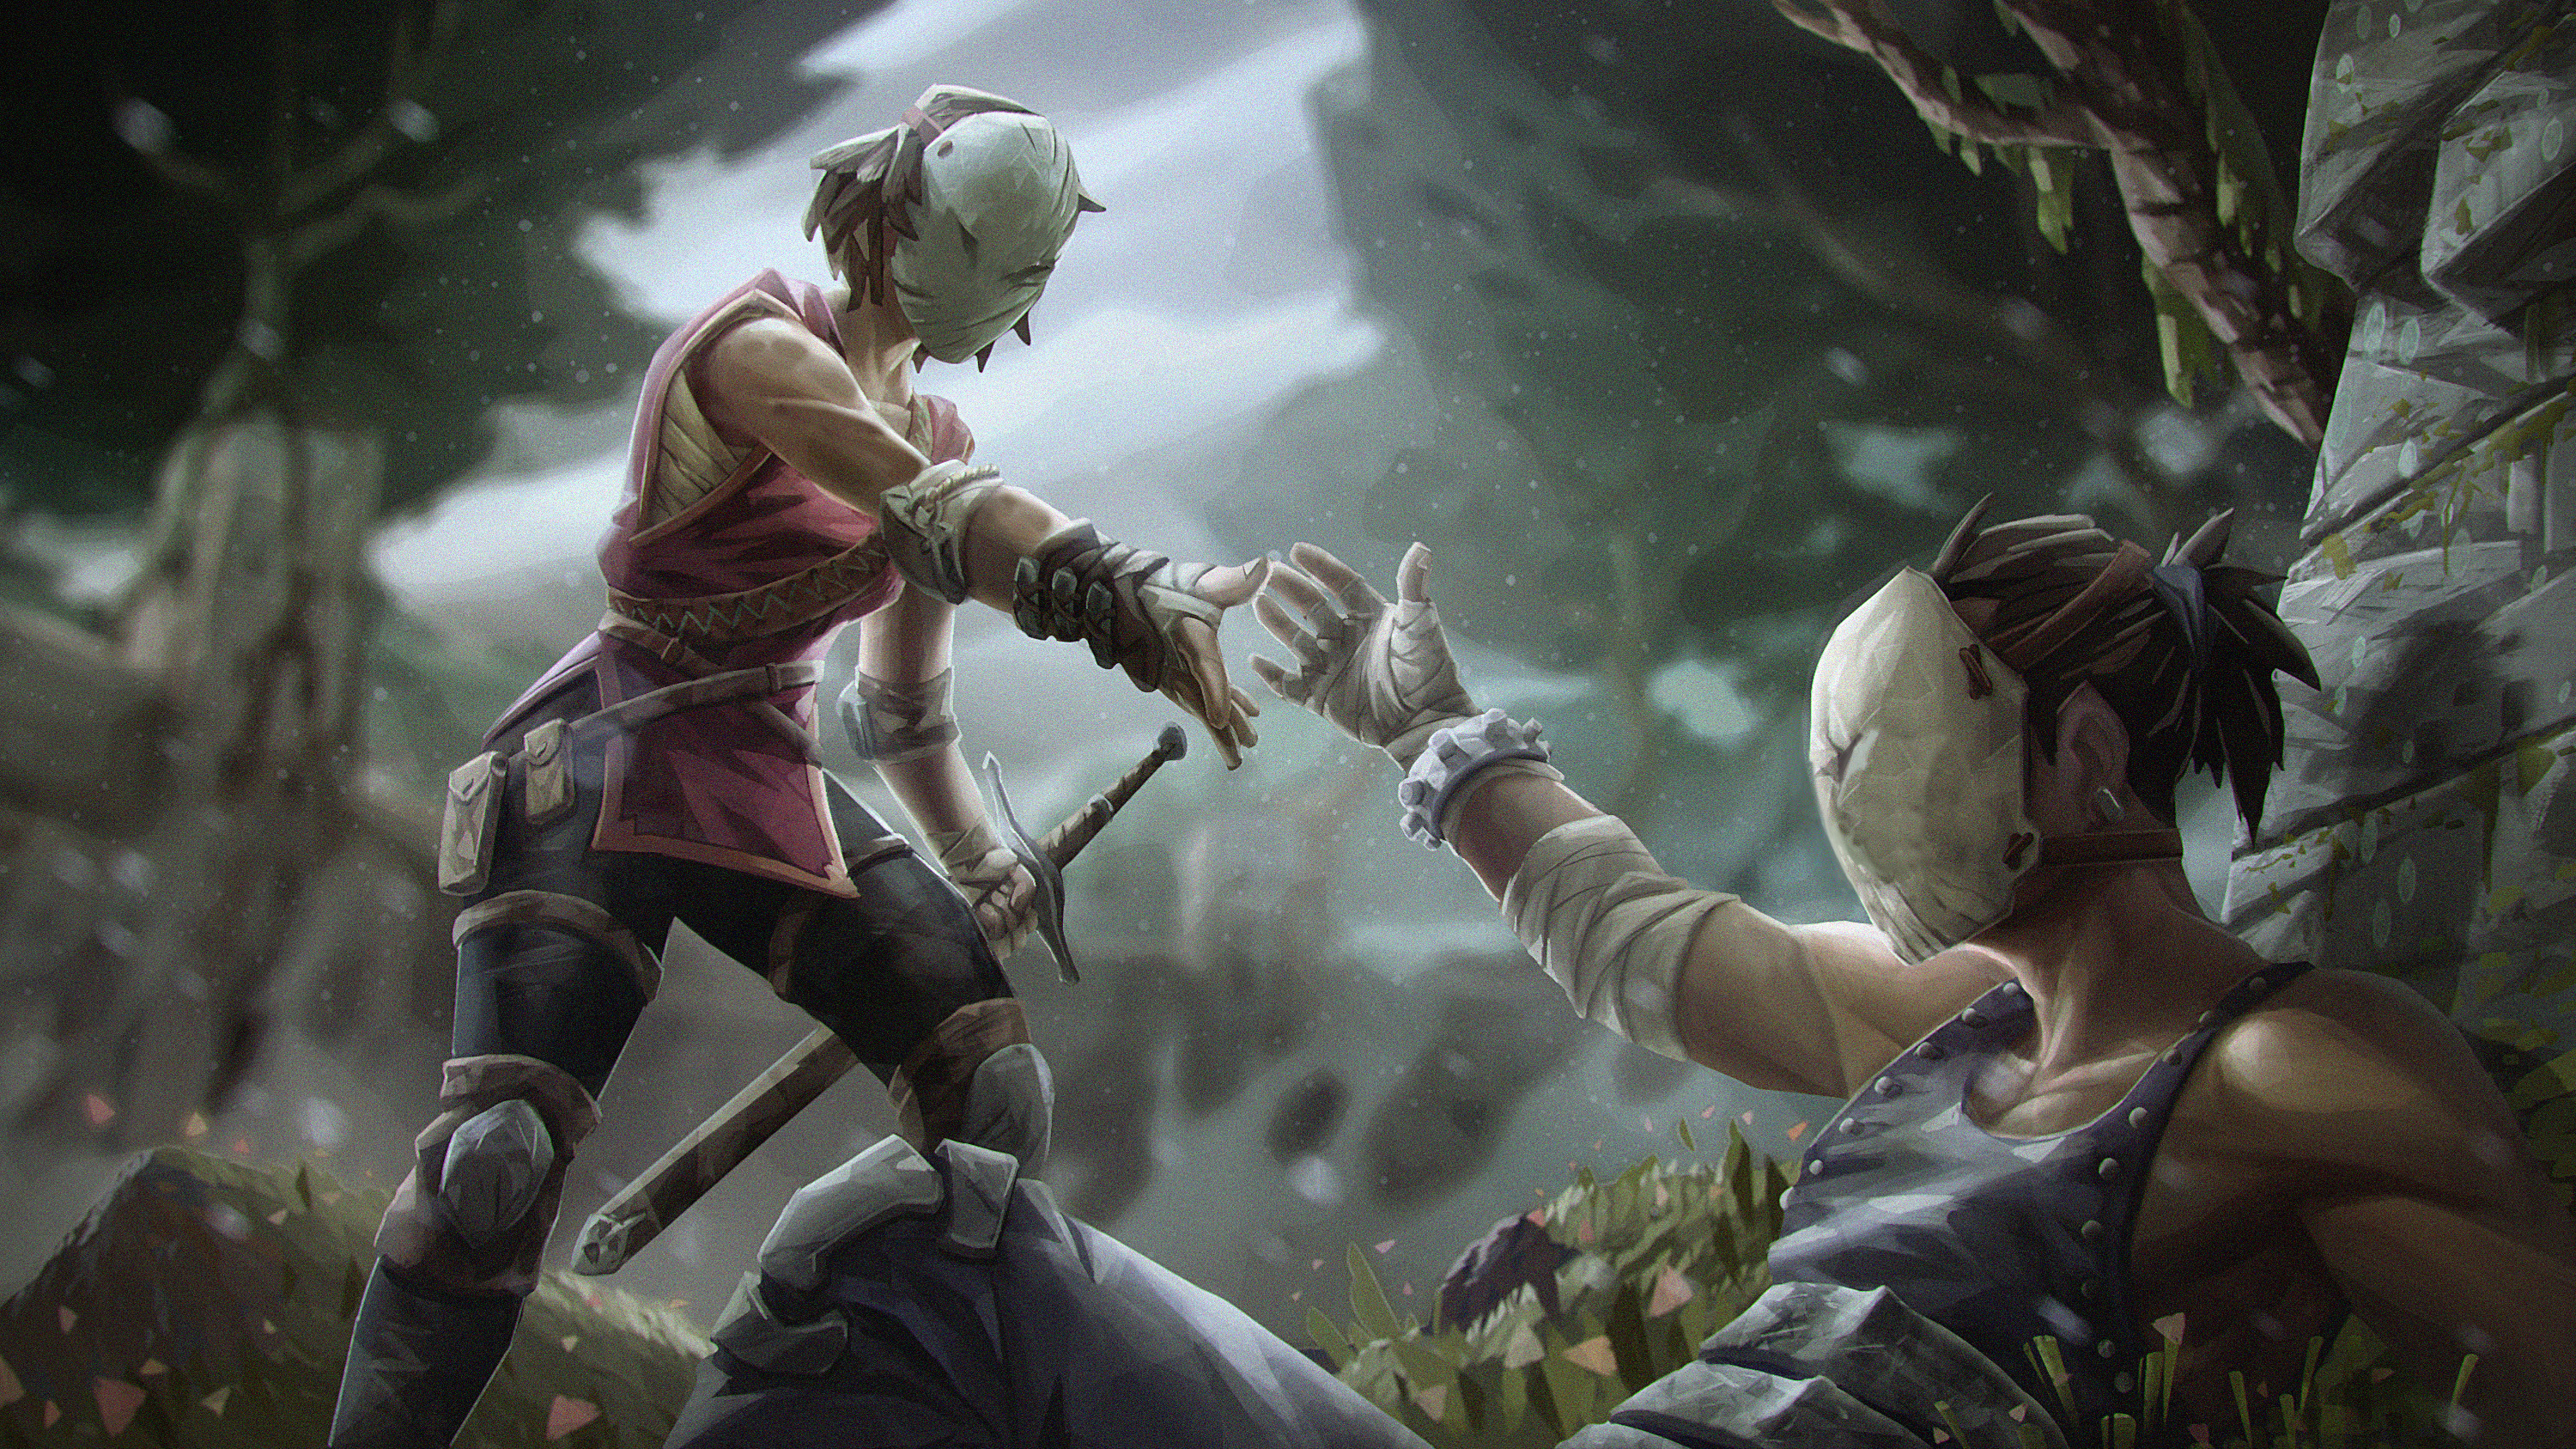 the brief was to recreate this existing keyframe, with a more stylised aproach: http://www.farazjafari.com/wp-content/uploads/2016/09/Absolver-Friendship-Concept-Art.jpg